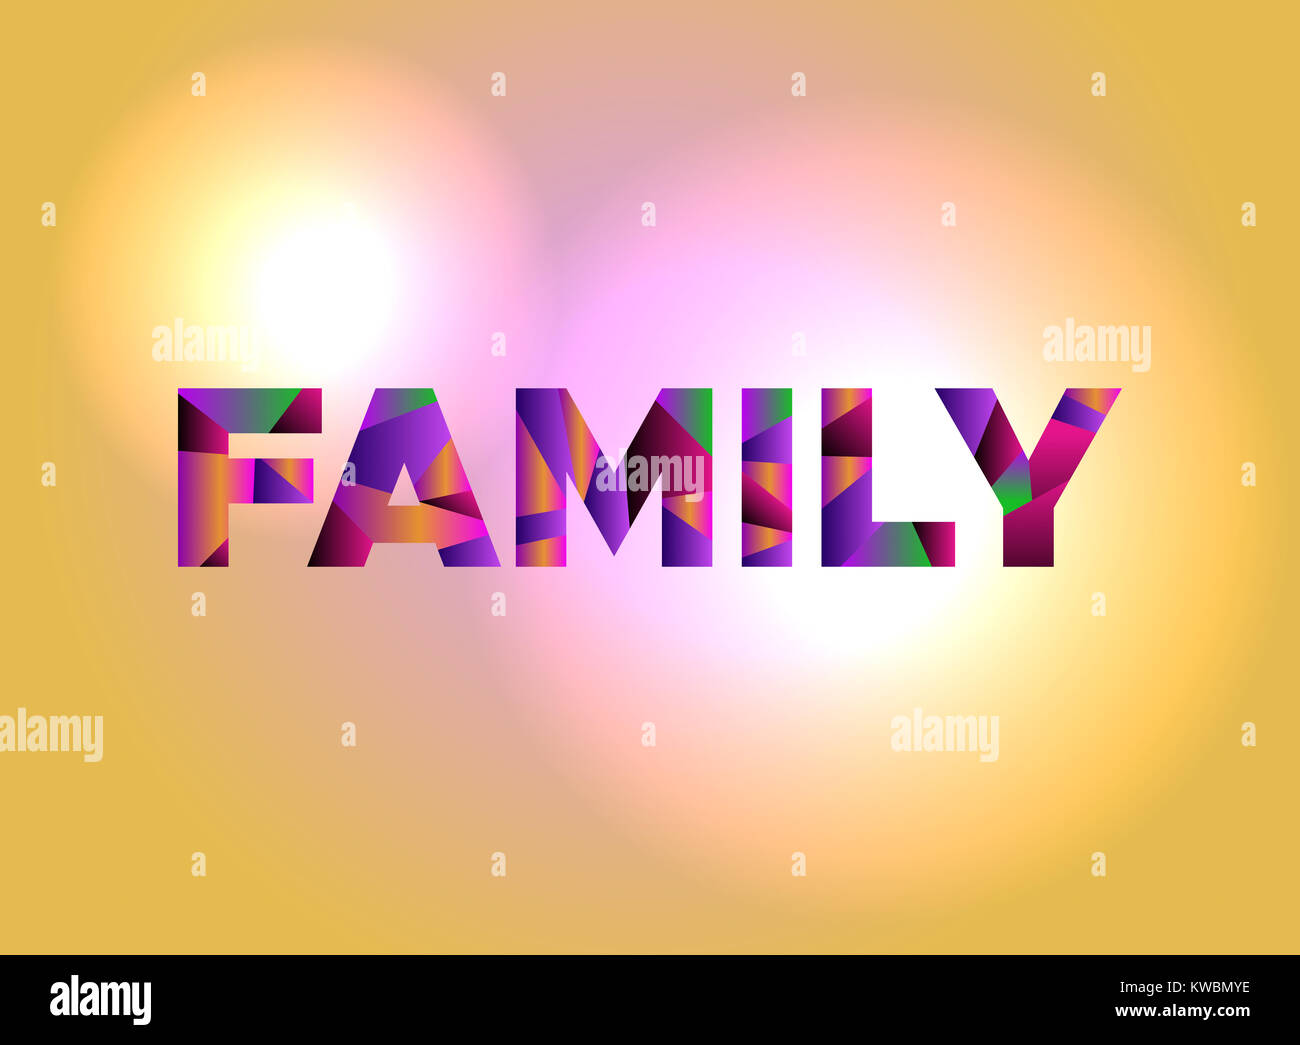 the-word-family-written-in-colorful-abstract-word-art-on-a-vibrant-KWBMYE.jpg